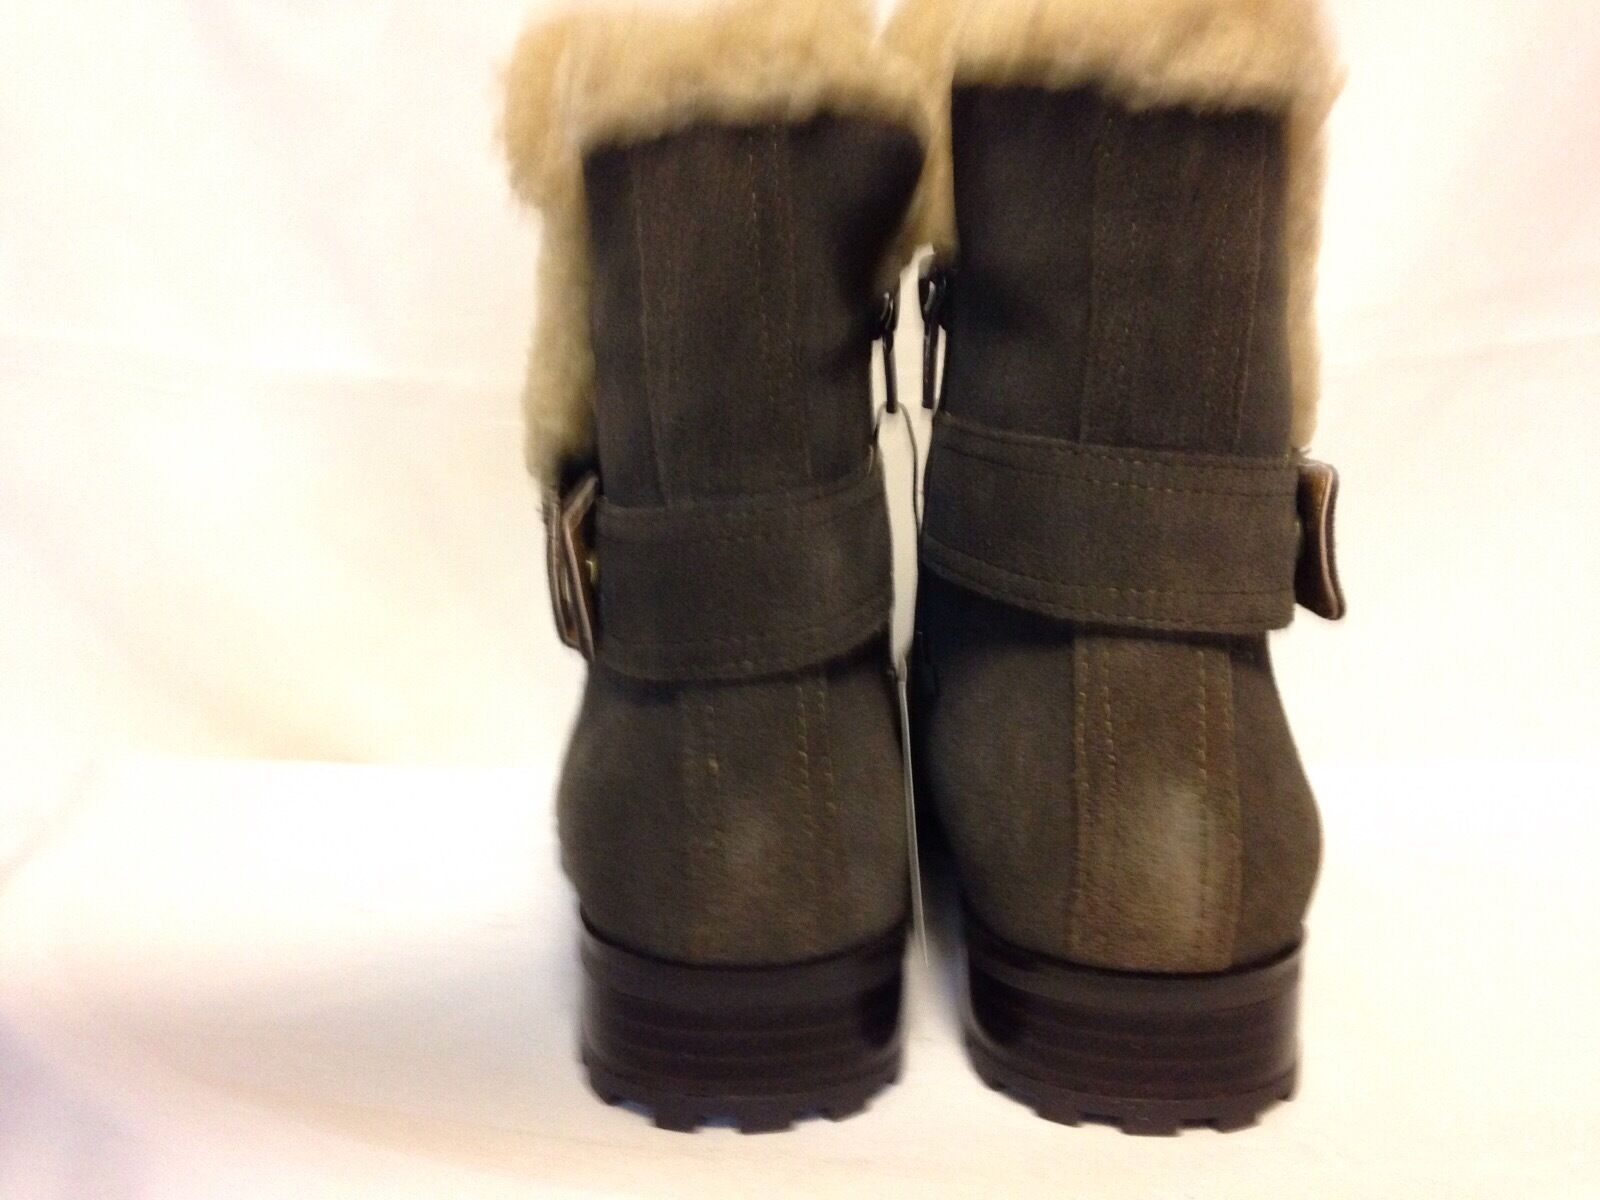 Giani Bernini Lotii Faux Shearling Lined Ankle Boot 6.5 Box M Army New with Box 6.5 910ce0